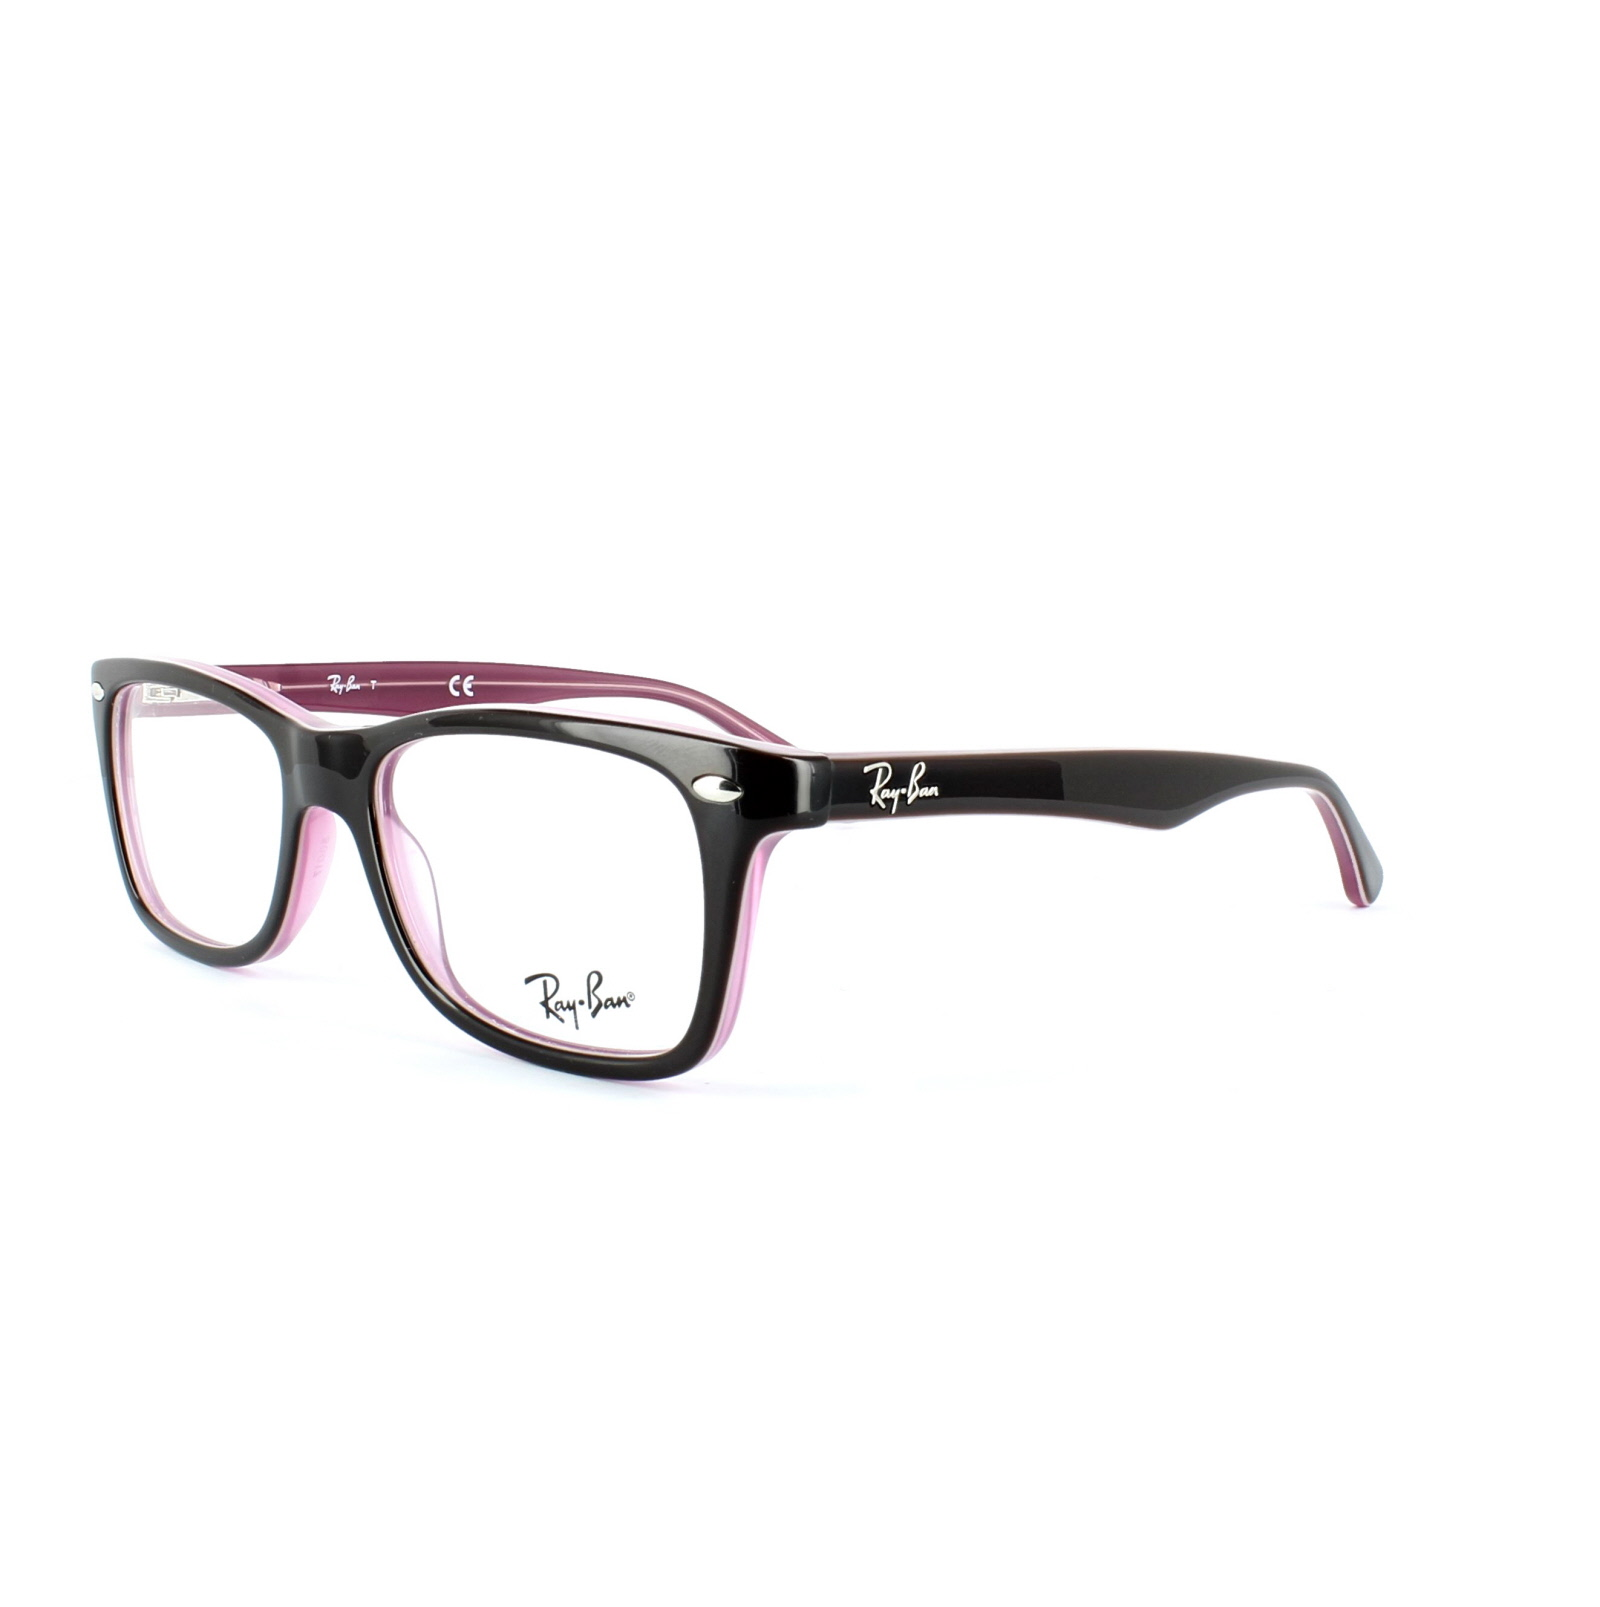 Ray-Ban Glasses Frames 5228 2126 Top Brown on Opal Pink Clear 50mm ...